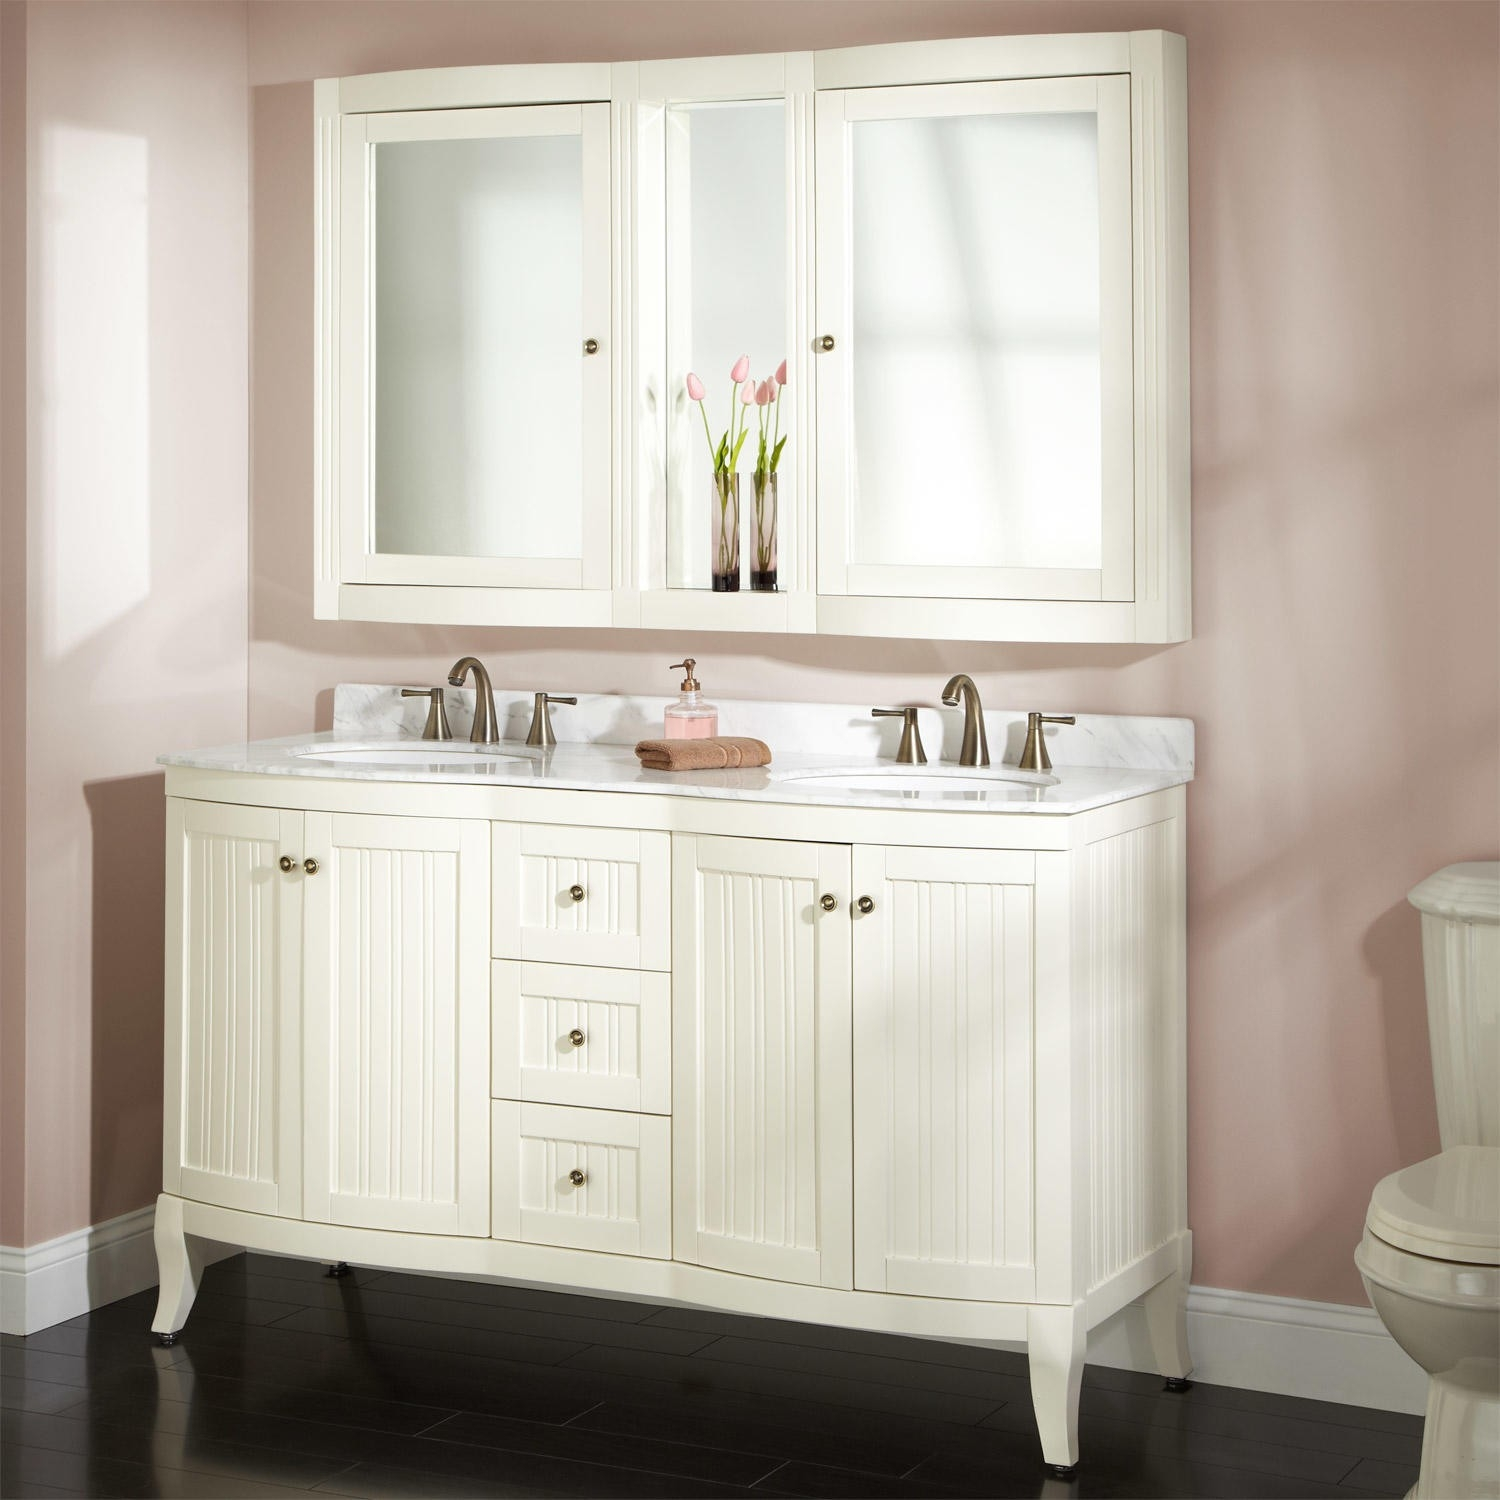 Jcpenney Bathroom Medicine Cabinets